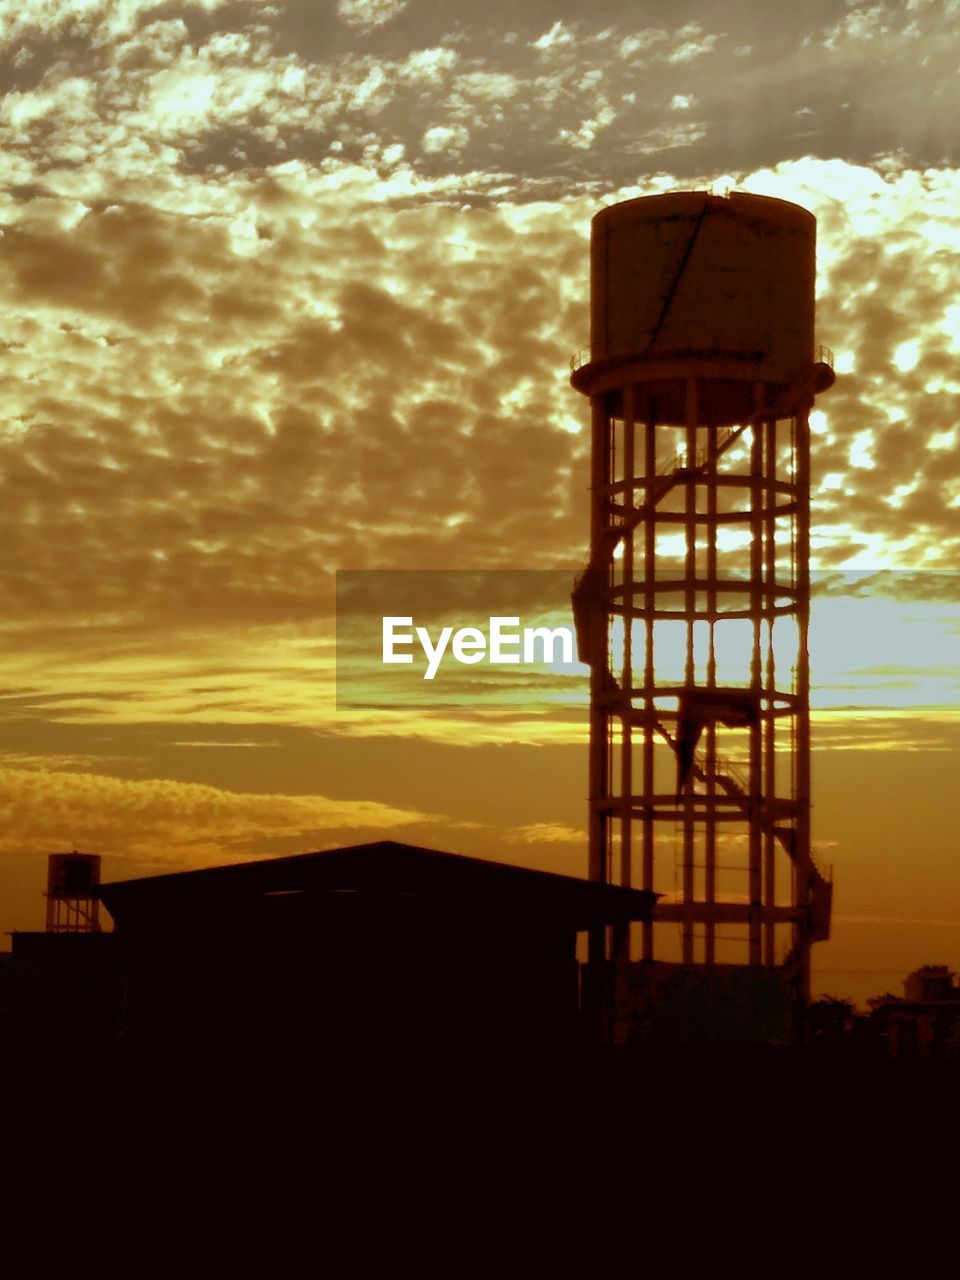 sunset, sky, cloud - sky, silhouette, built structure, no people, nature, outdoors, architecture, lookout tower, beauty in nature, day